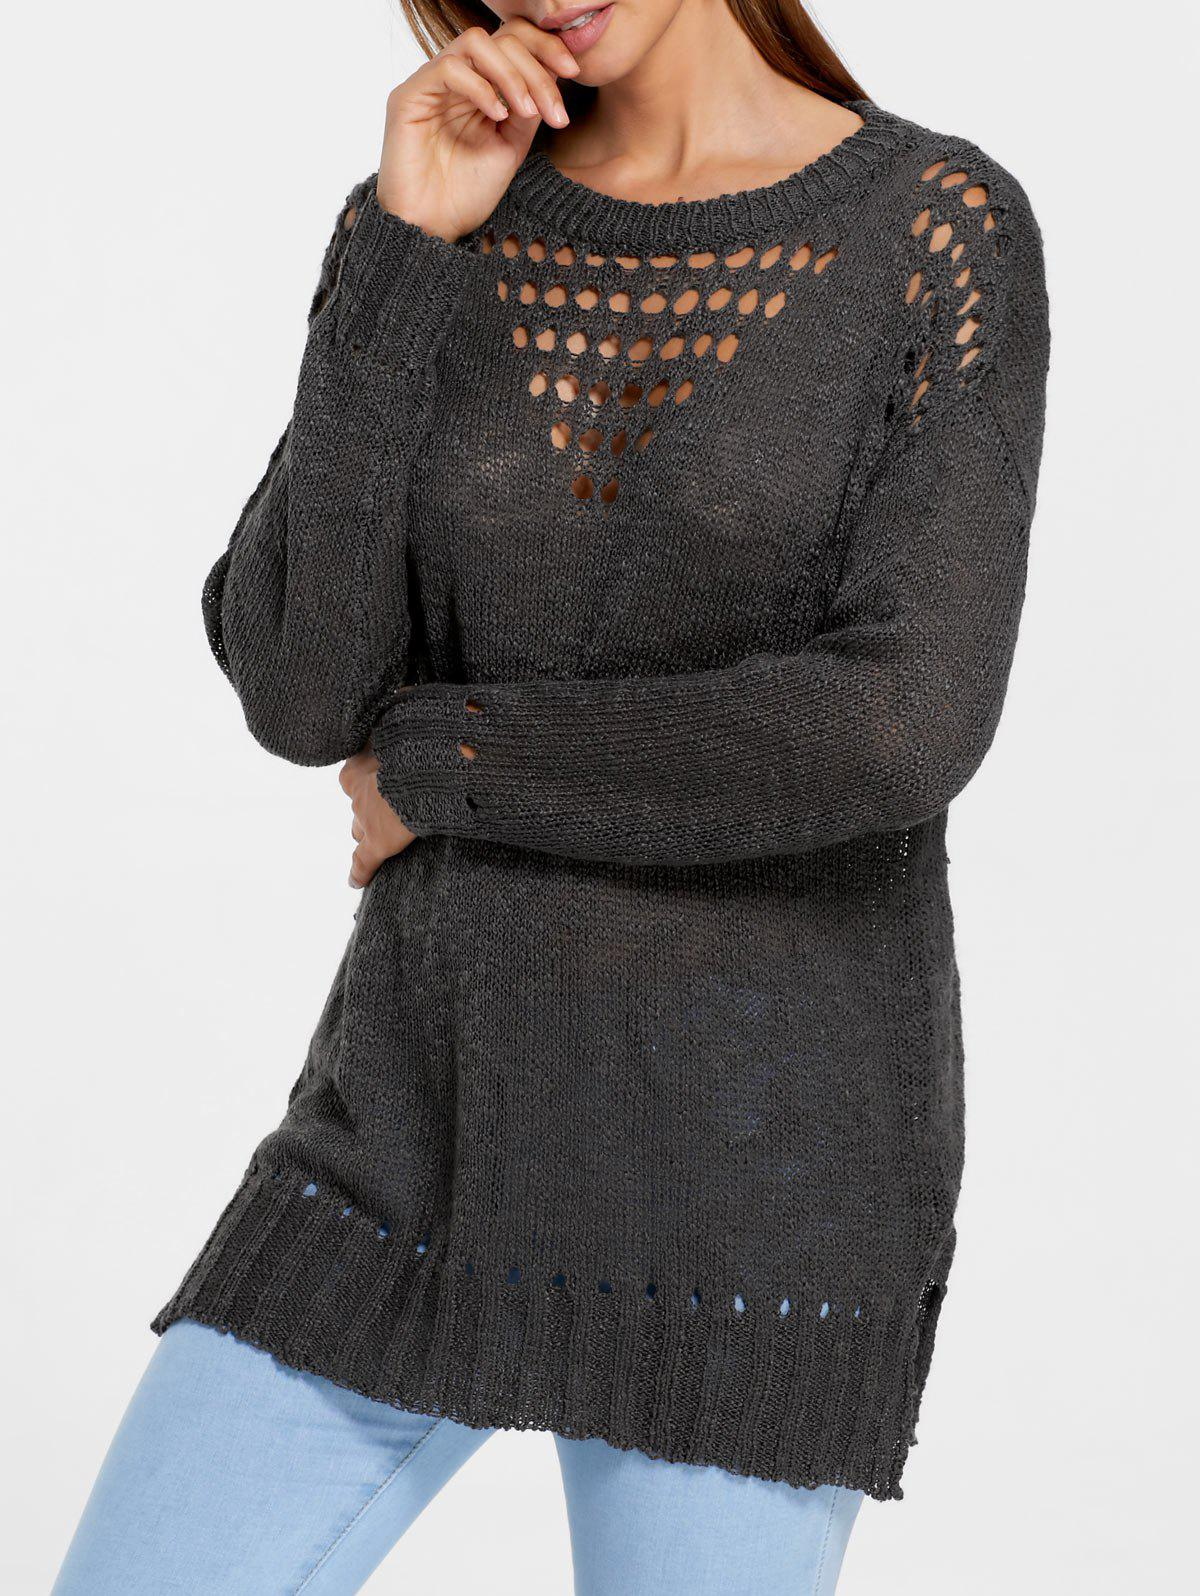 2018 Side Slit Hollow Out Tunic Sweater DEEP BROWN M In Sweaters ...